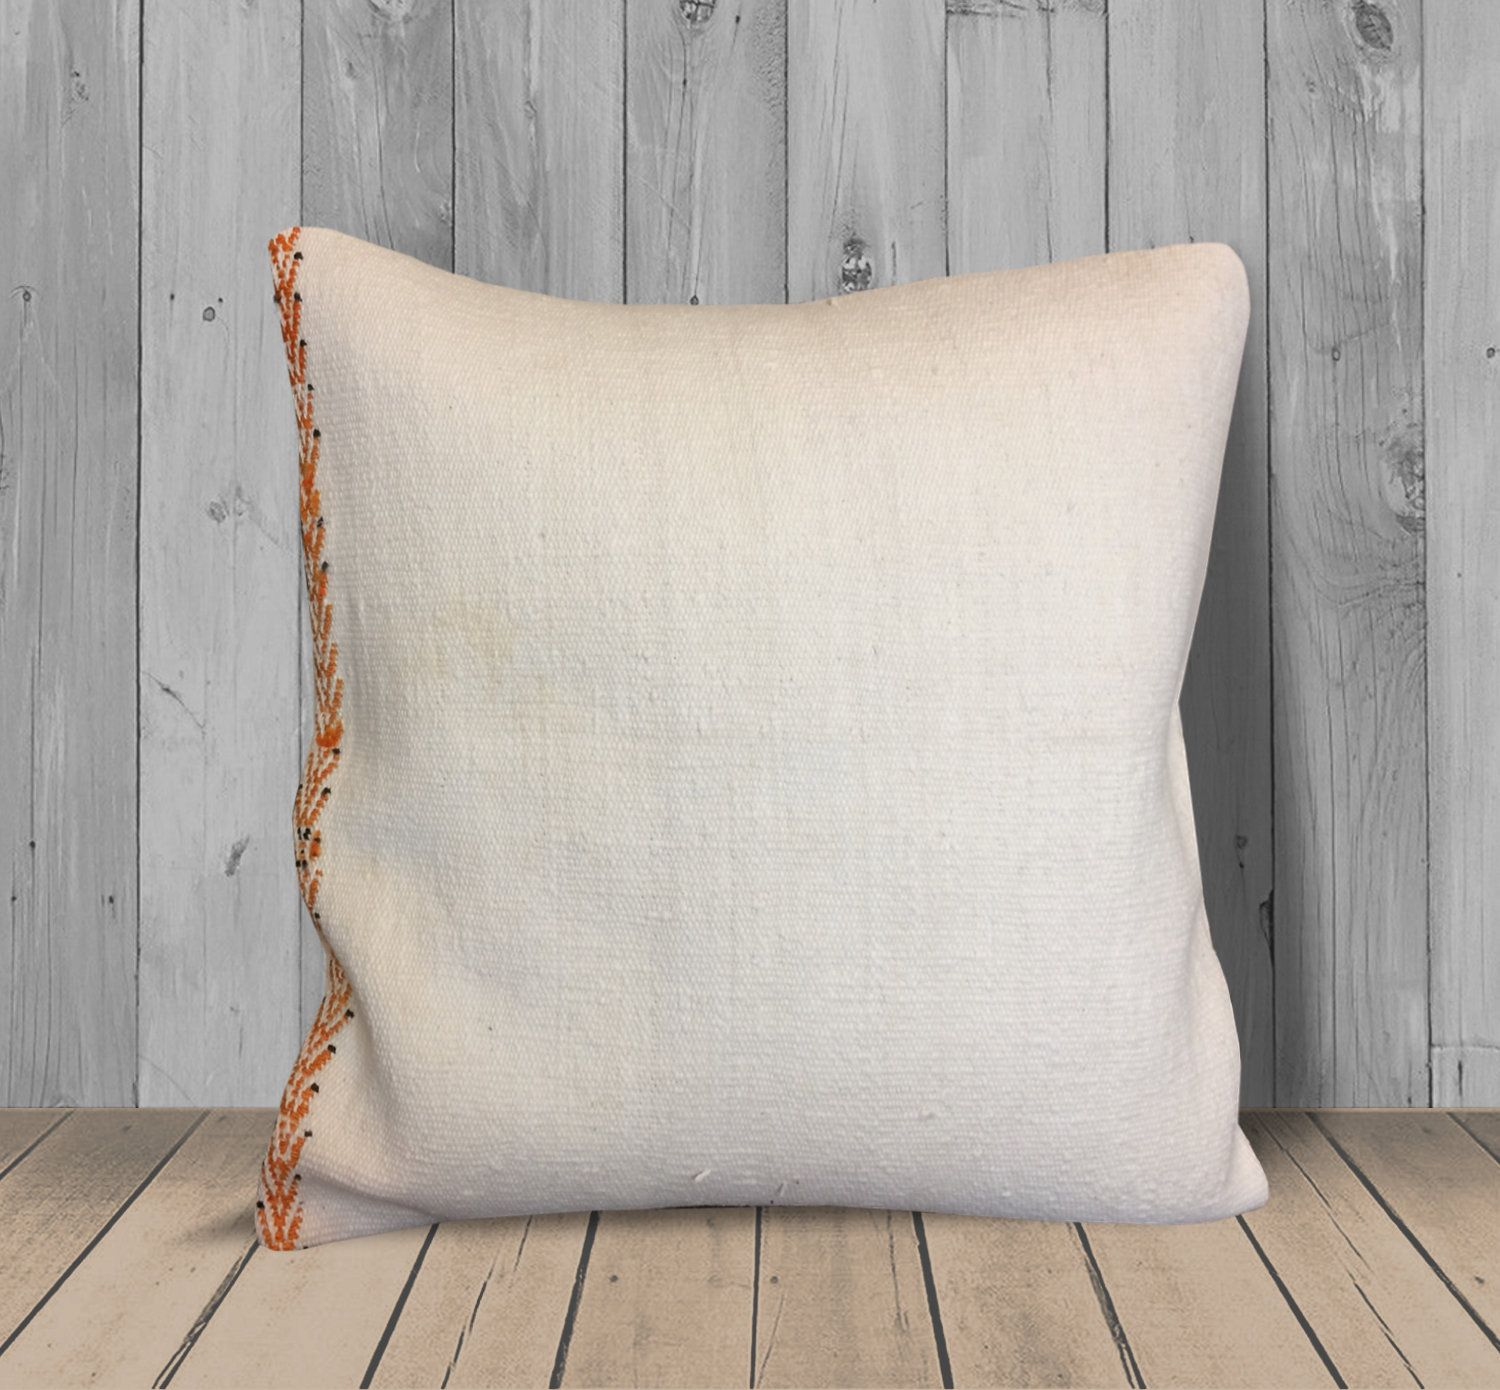 Brilliant White Orange Turkish Kilim Pillow 20X20 Cushion Throw Gmtry Best Dining Table And Chair Ideas Images Gmtryco